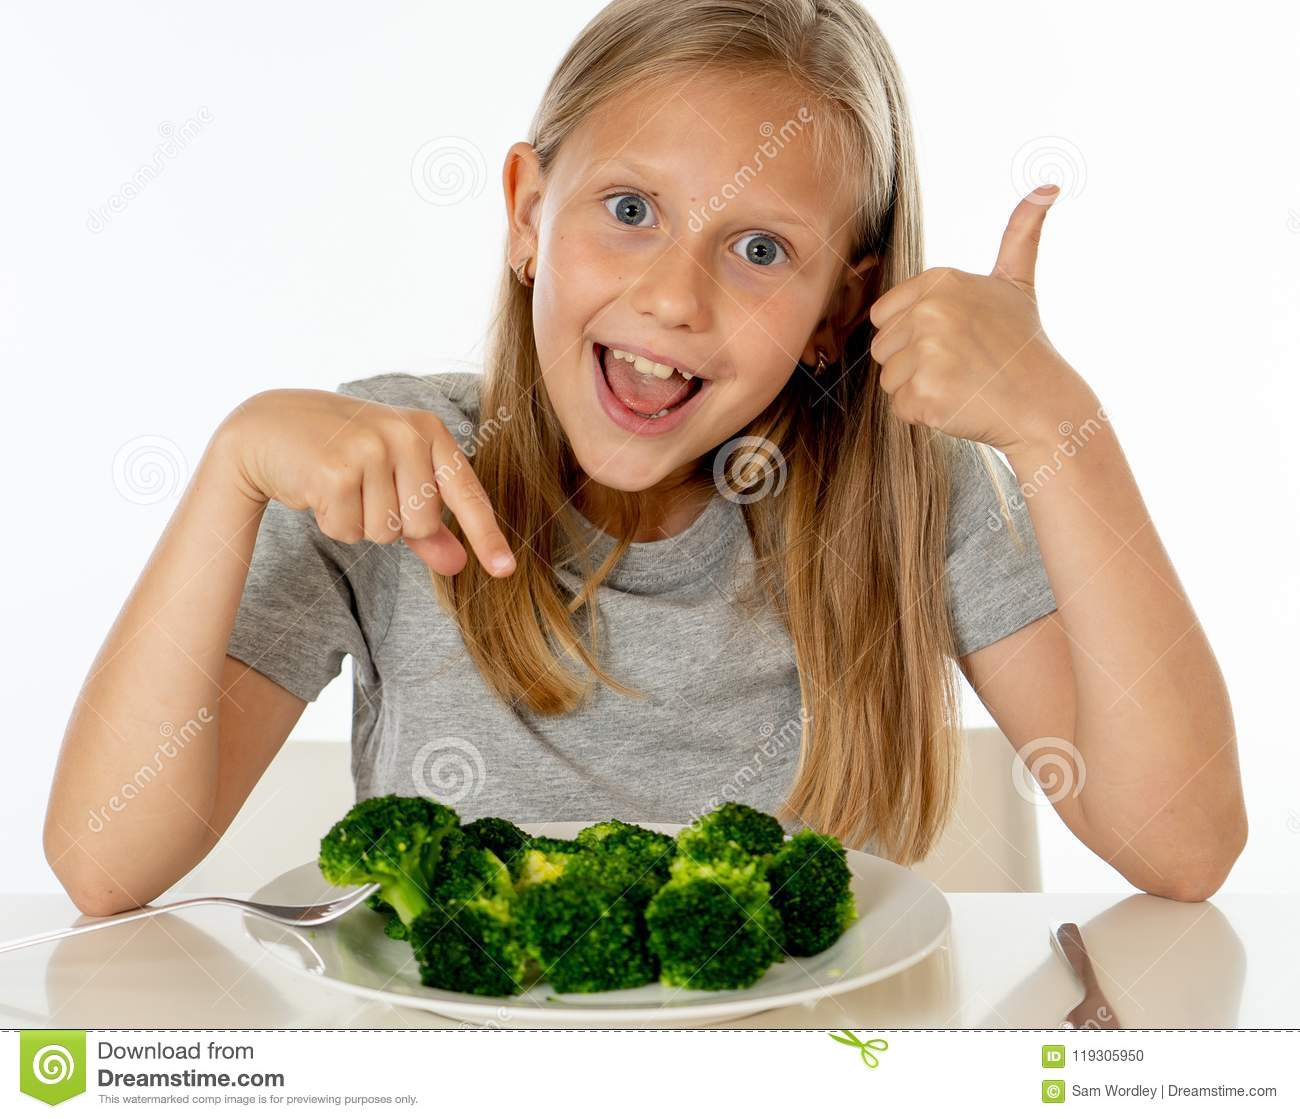 d9cdba7f Happy young blonde girl with thumbs up enjoying and loving eating her broccoli  vegetables on a plate with knife and fork in healthy children eating concept